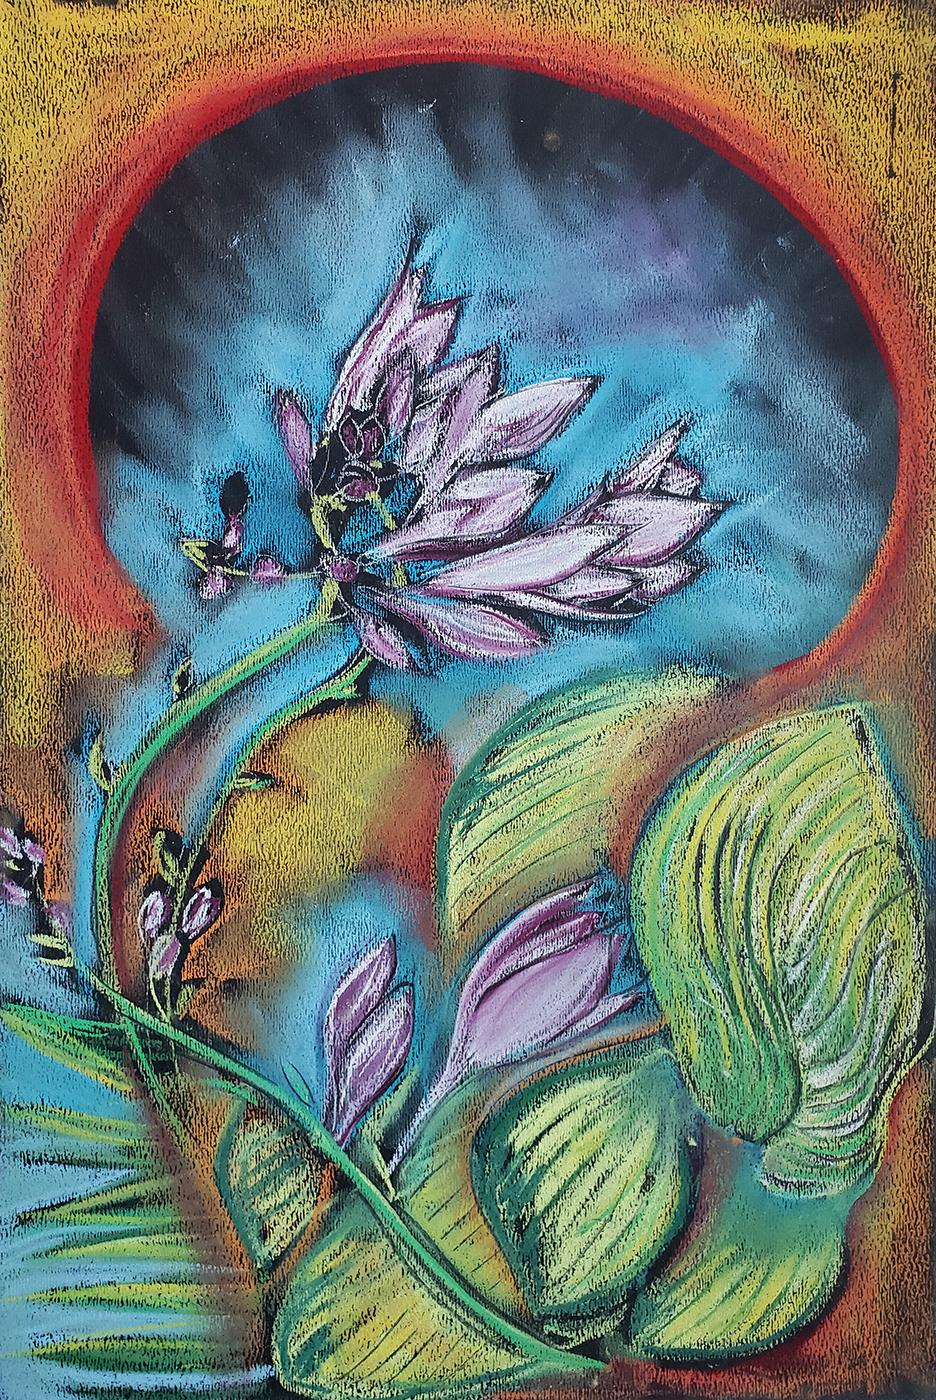 Secret Garden, Portal, colorful pastel on paper, abstracted flower pattern